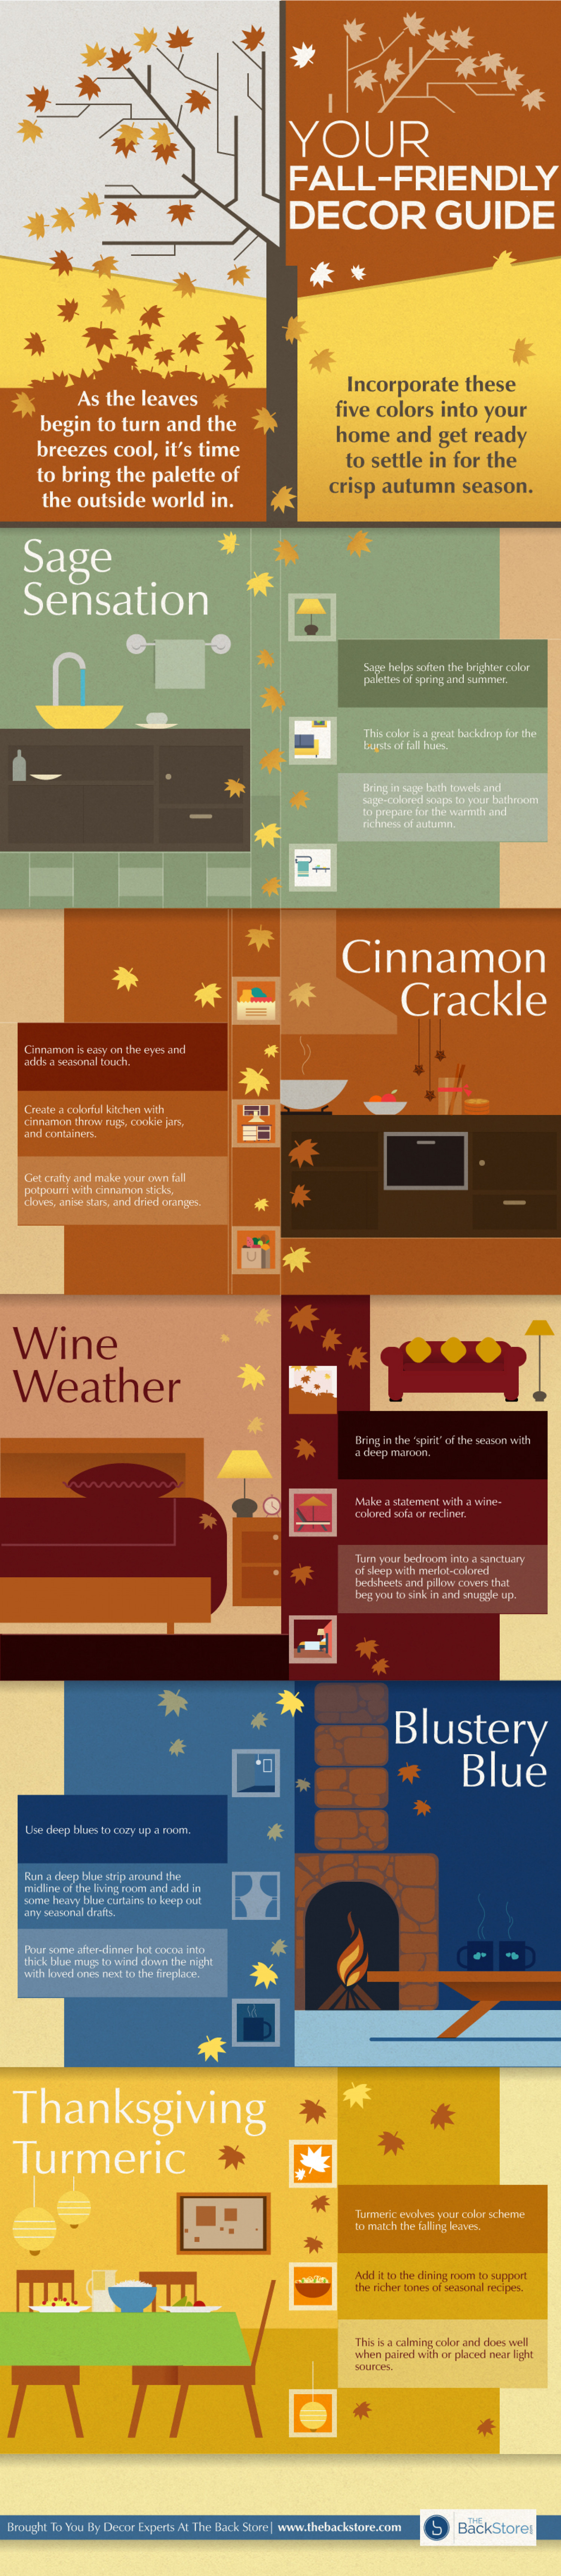 Your Fall-Friendly Decor Guide [Infographic] Infographic